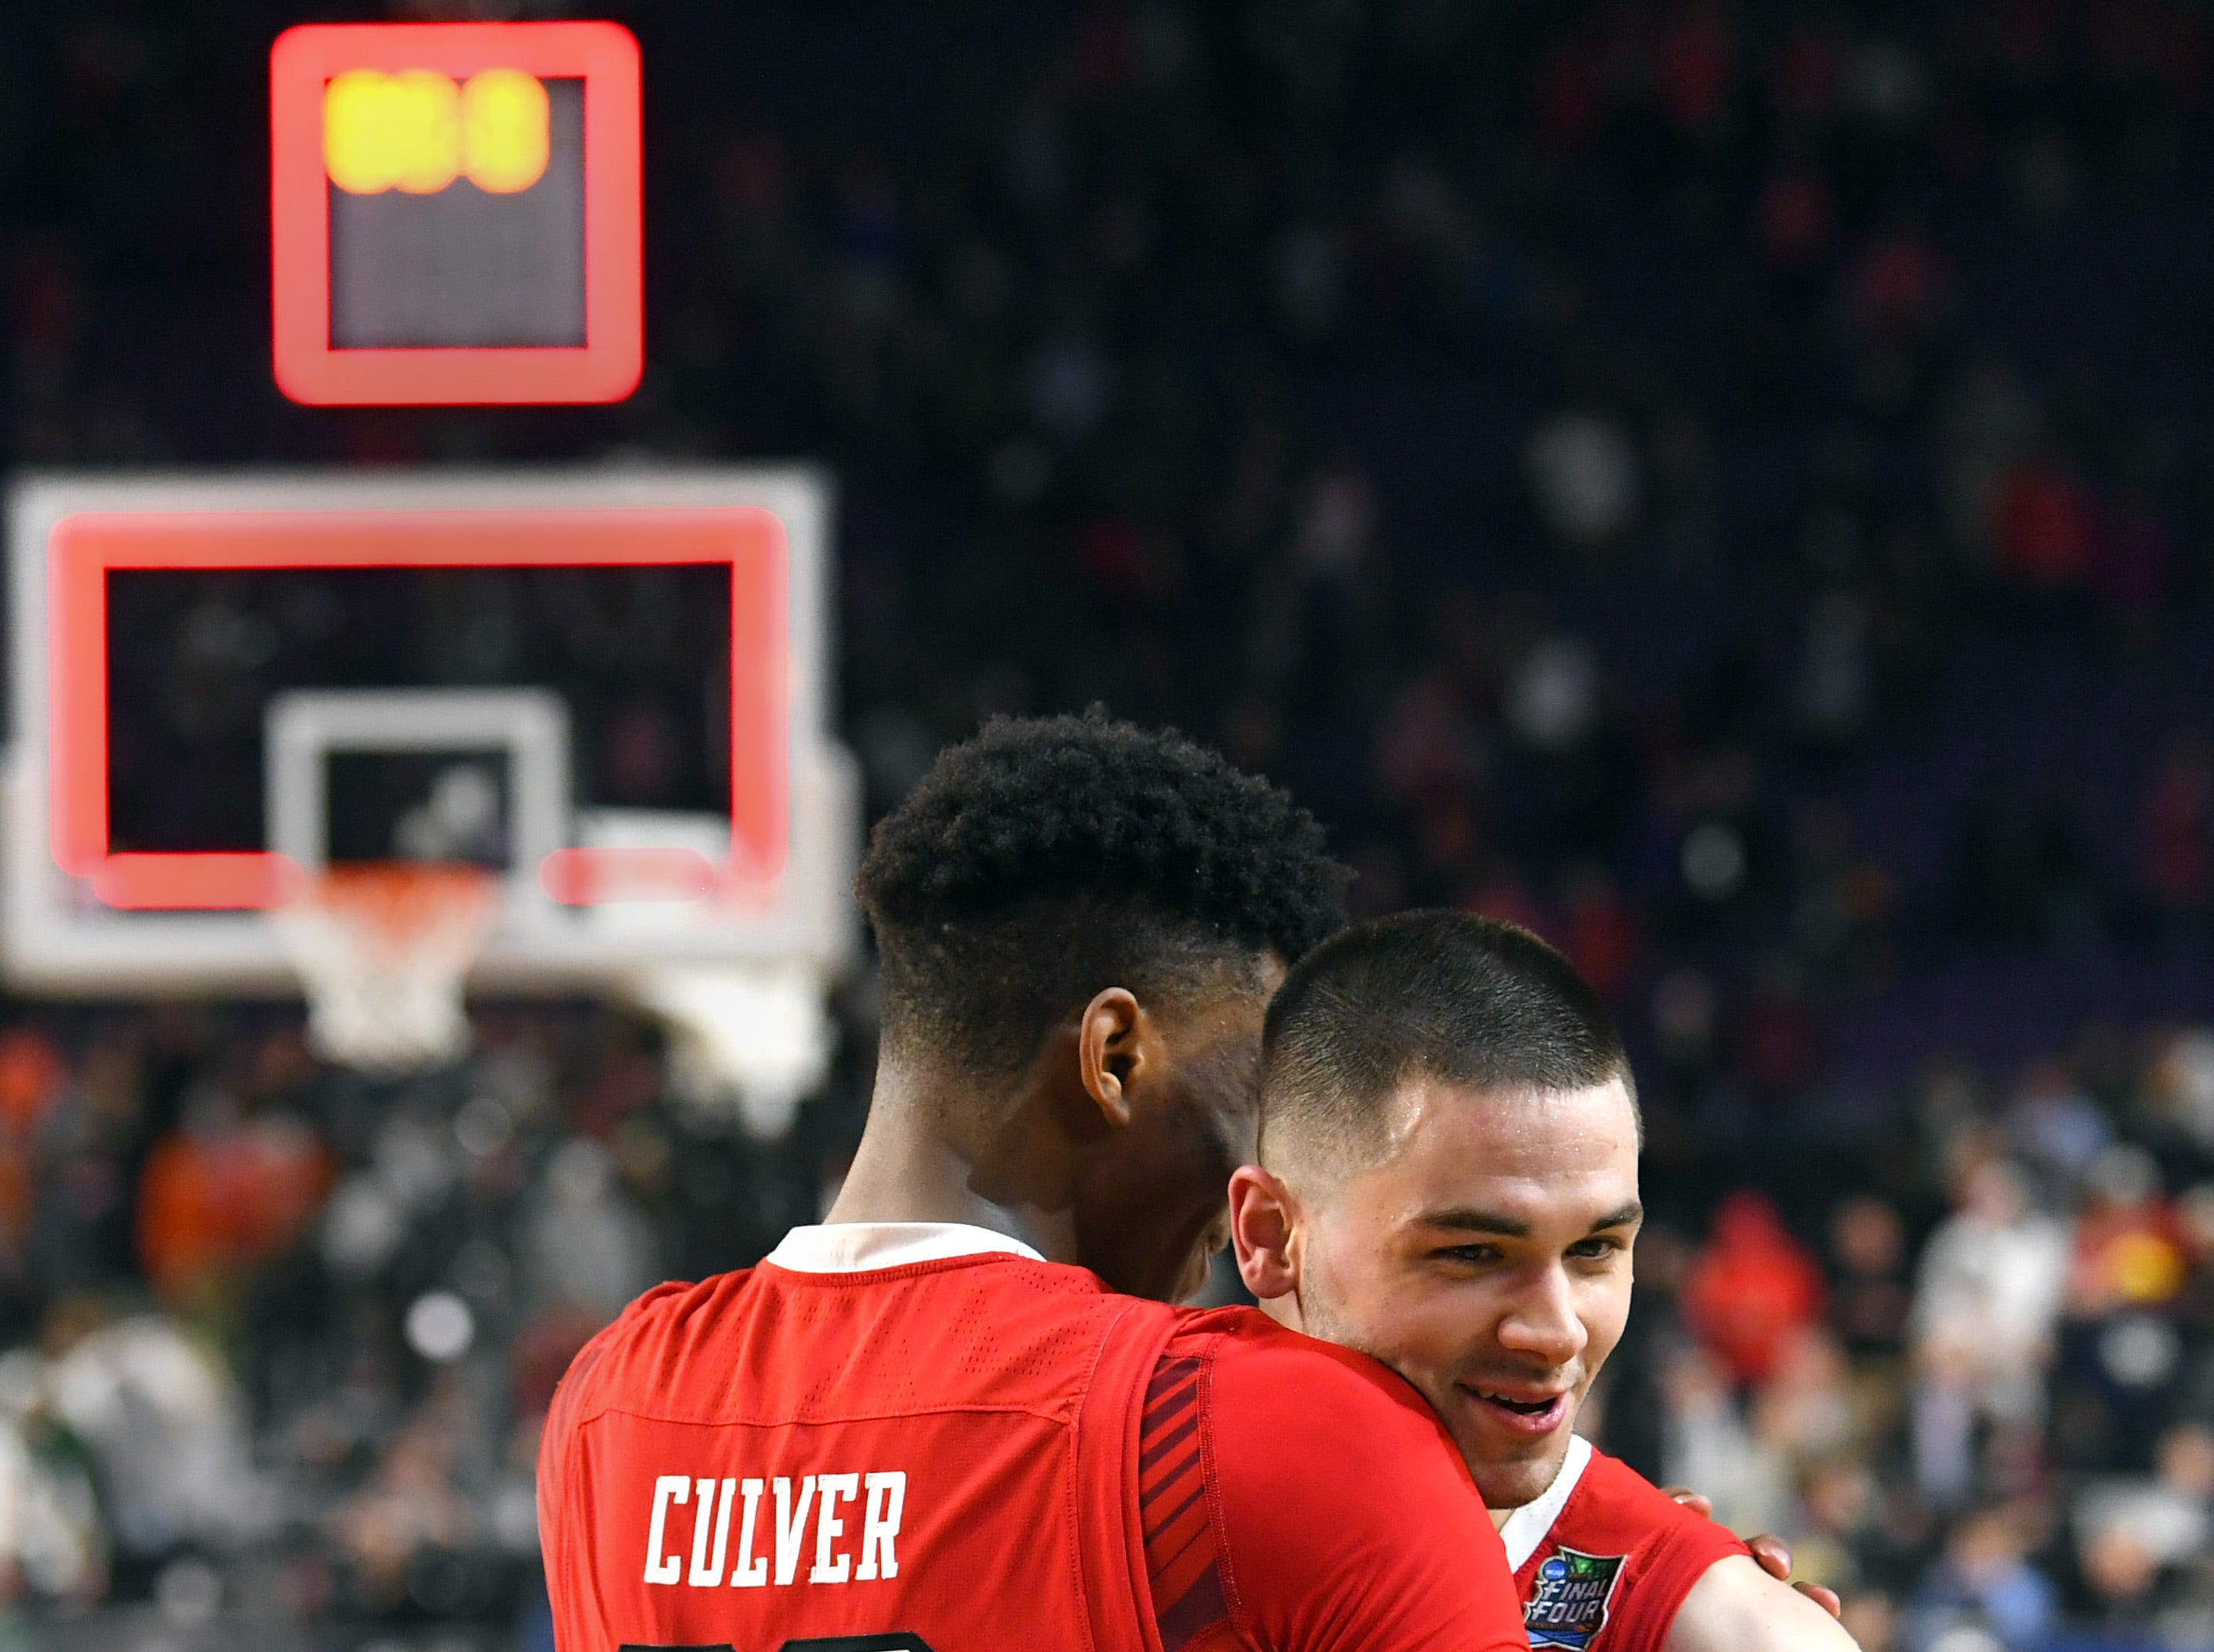 Apr 6, 2019; Minneapolis, MN, USA; Texas Tech Red Raiders guard Jarrett Culver (23) and guard Matt Mooney (13) celebrate after defeating the Michigan State Spartans in the semifinals of the 2019 men's Final Four at US Bank Stadium. Mandatory Credit: Robert Deutsch-USA TODAY Sports